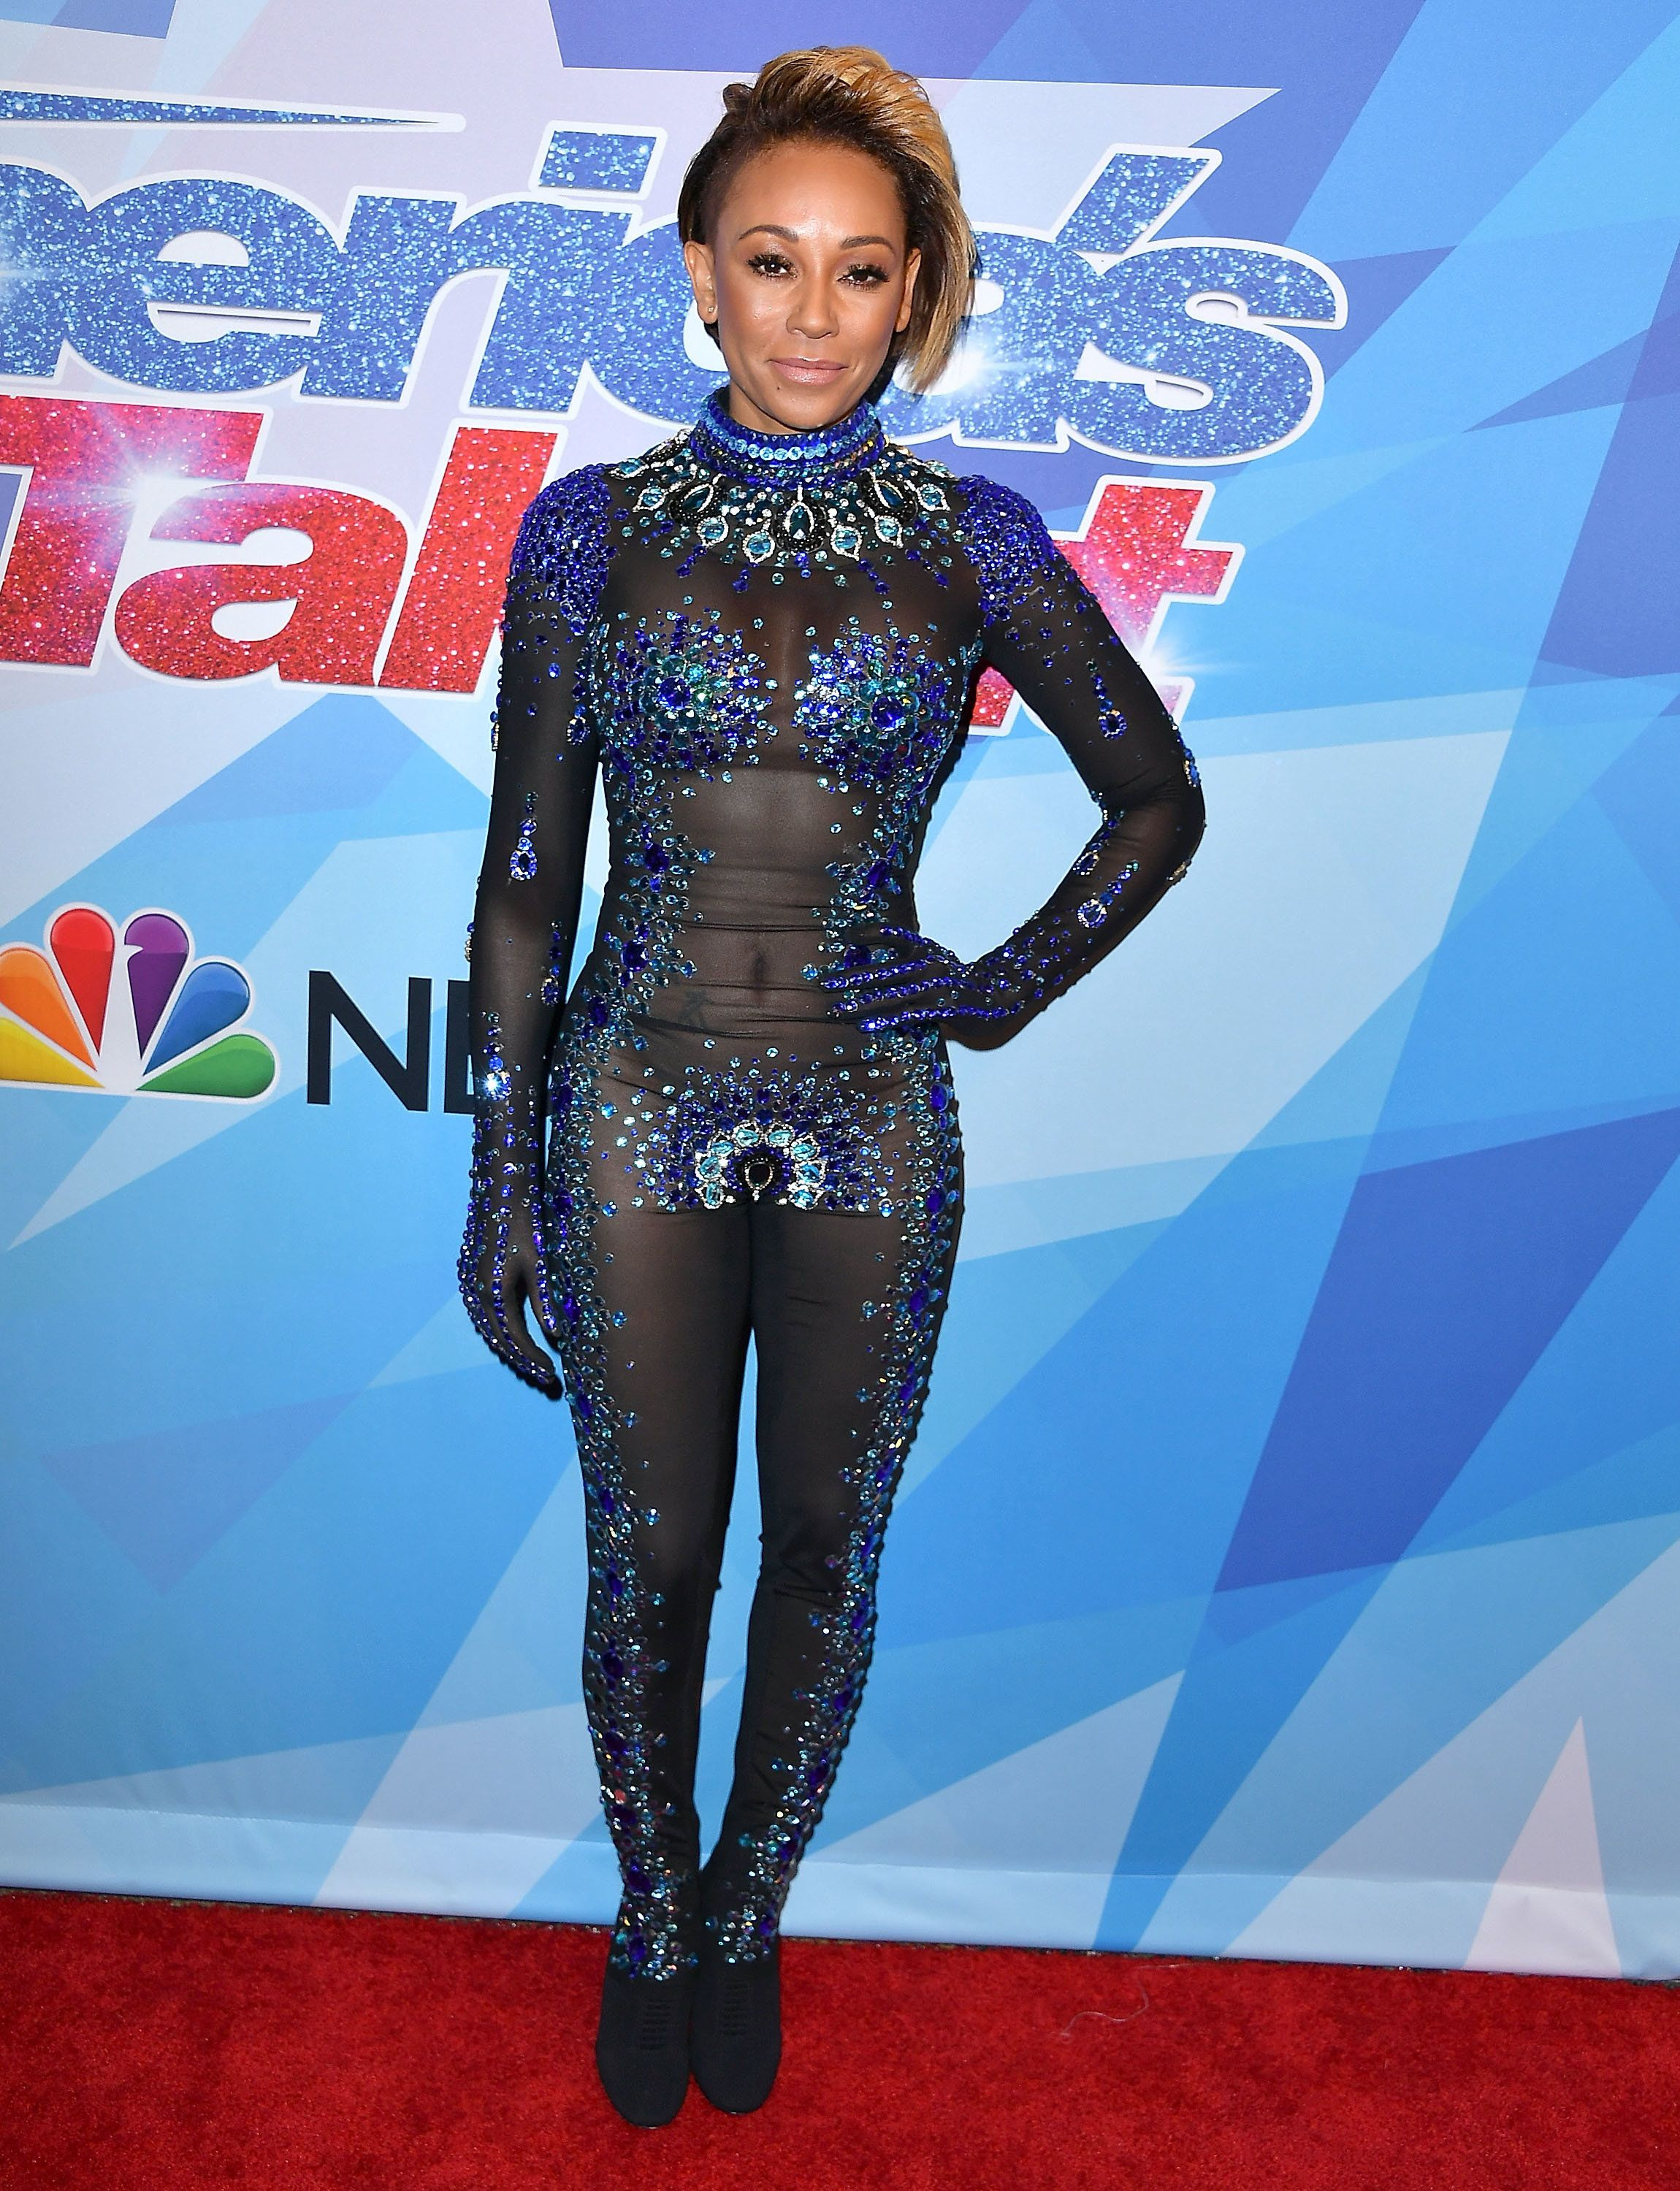 Mel B Gives Us Marvel Vibes In Her Nearly-Naked Get-Up On 'America's Got Talent'